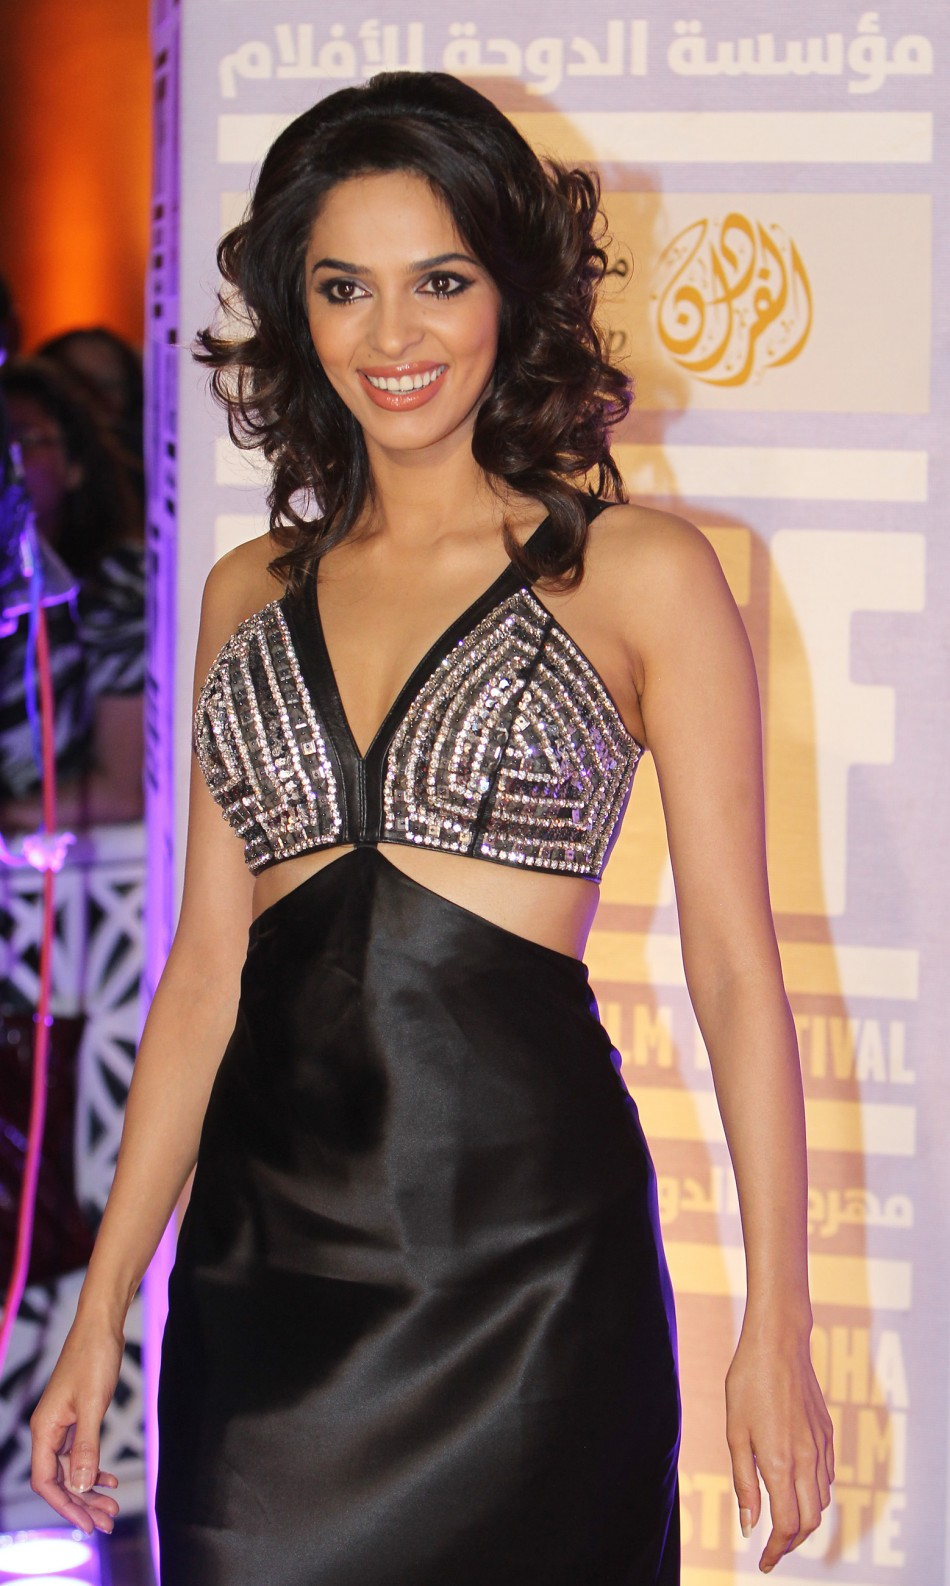 Paparazzi Mallika Sherawat naked (23 photo), Tits, Is a cute, Instagram, cleavage 2018